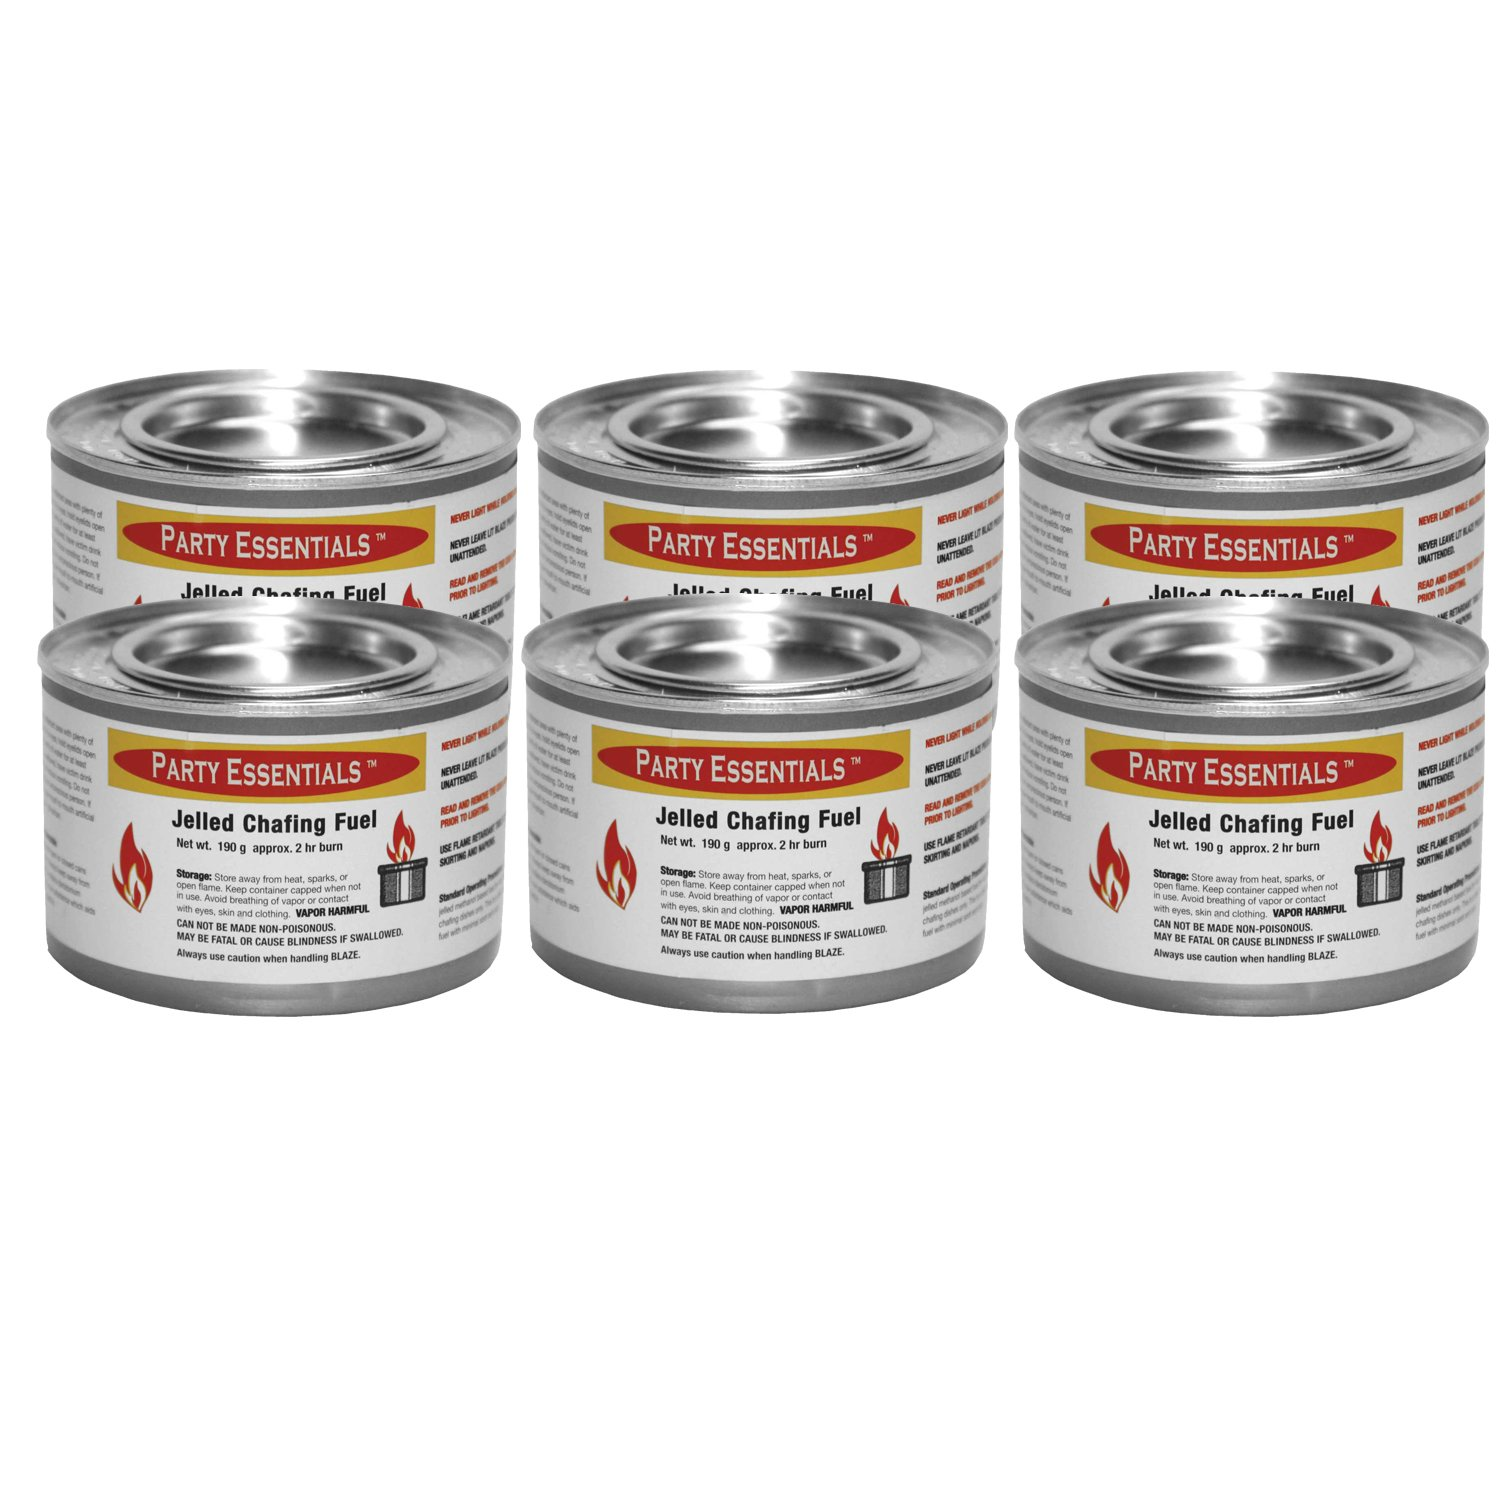 Party Essentials Chafing Dish Jelled Methanol Warming Fuel, 6-Pack